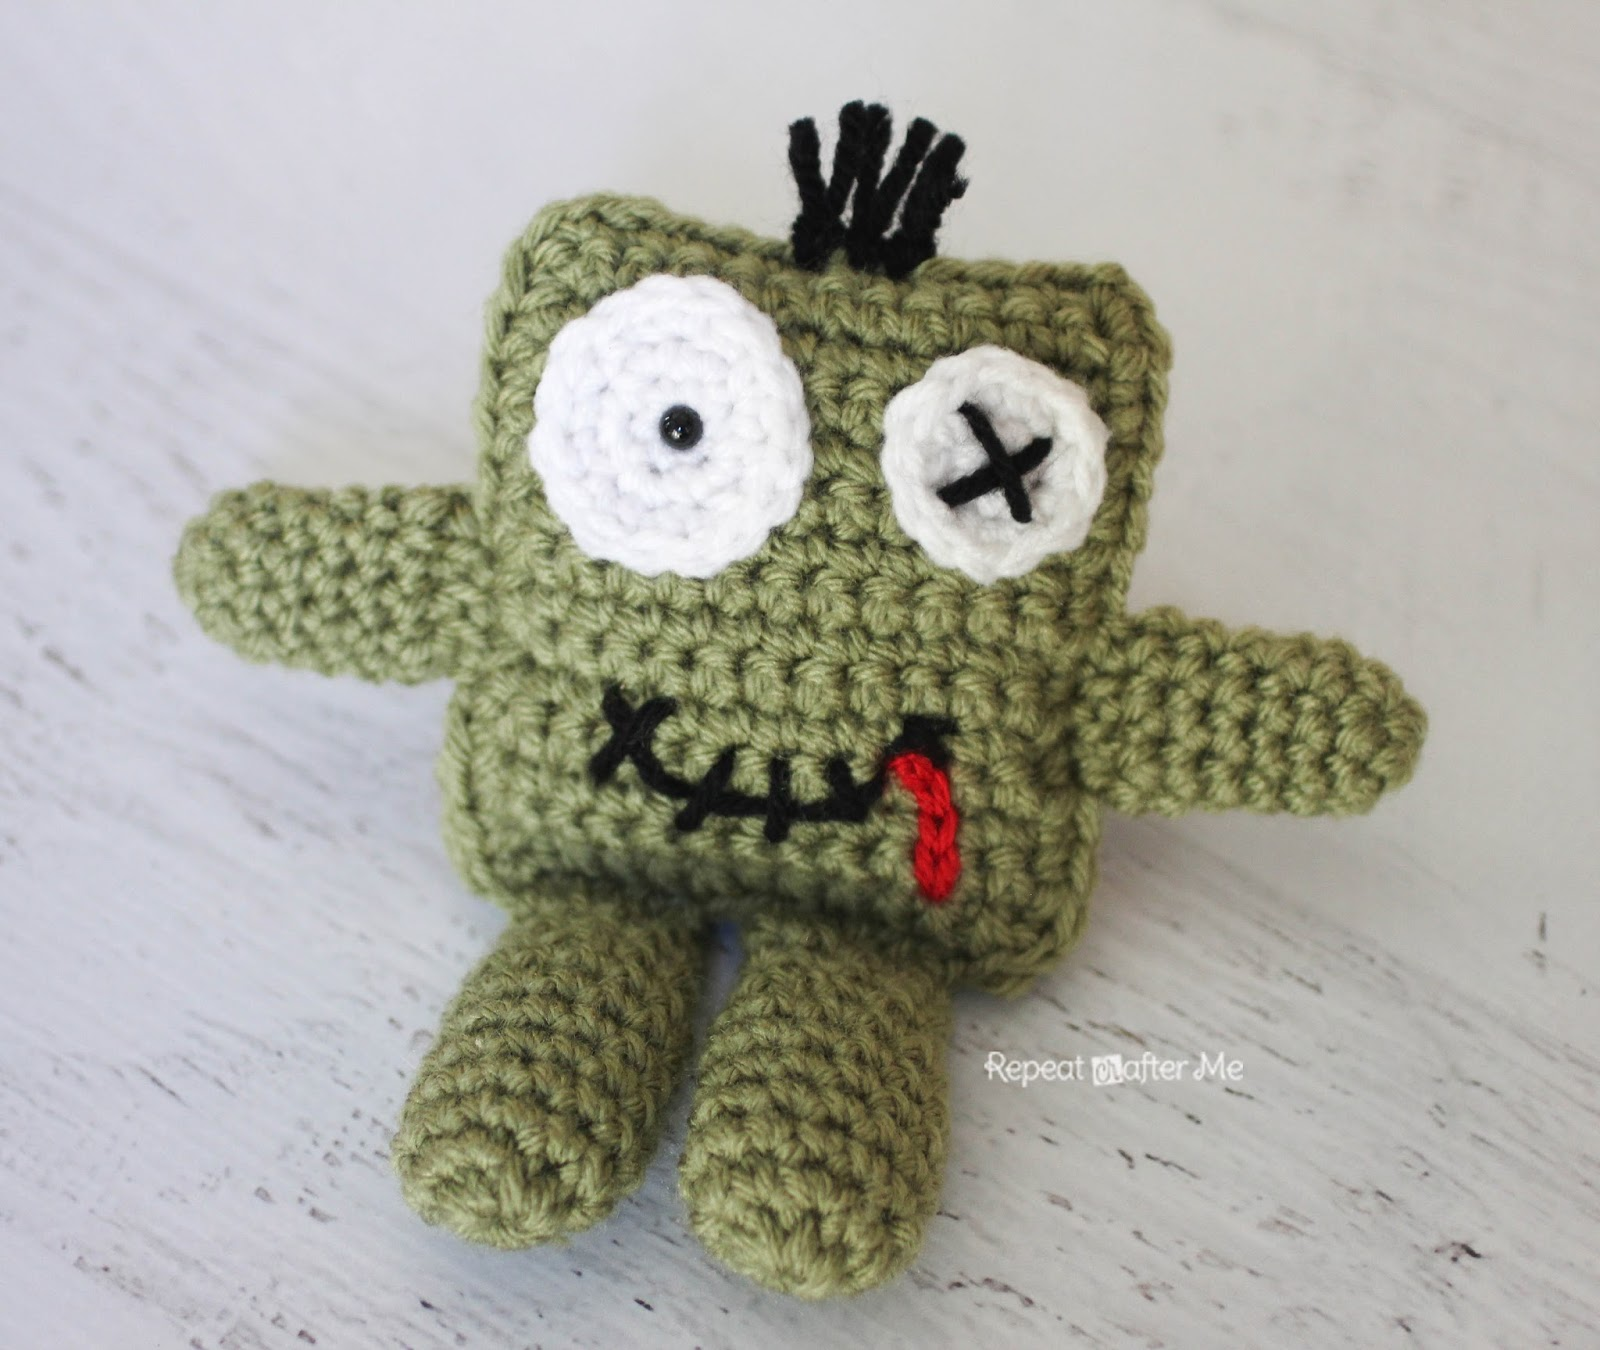 Crochet Pattern Zombie Doll : Repeat Crafter Me: Friendly Crochet Zombie Doll